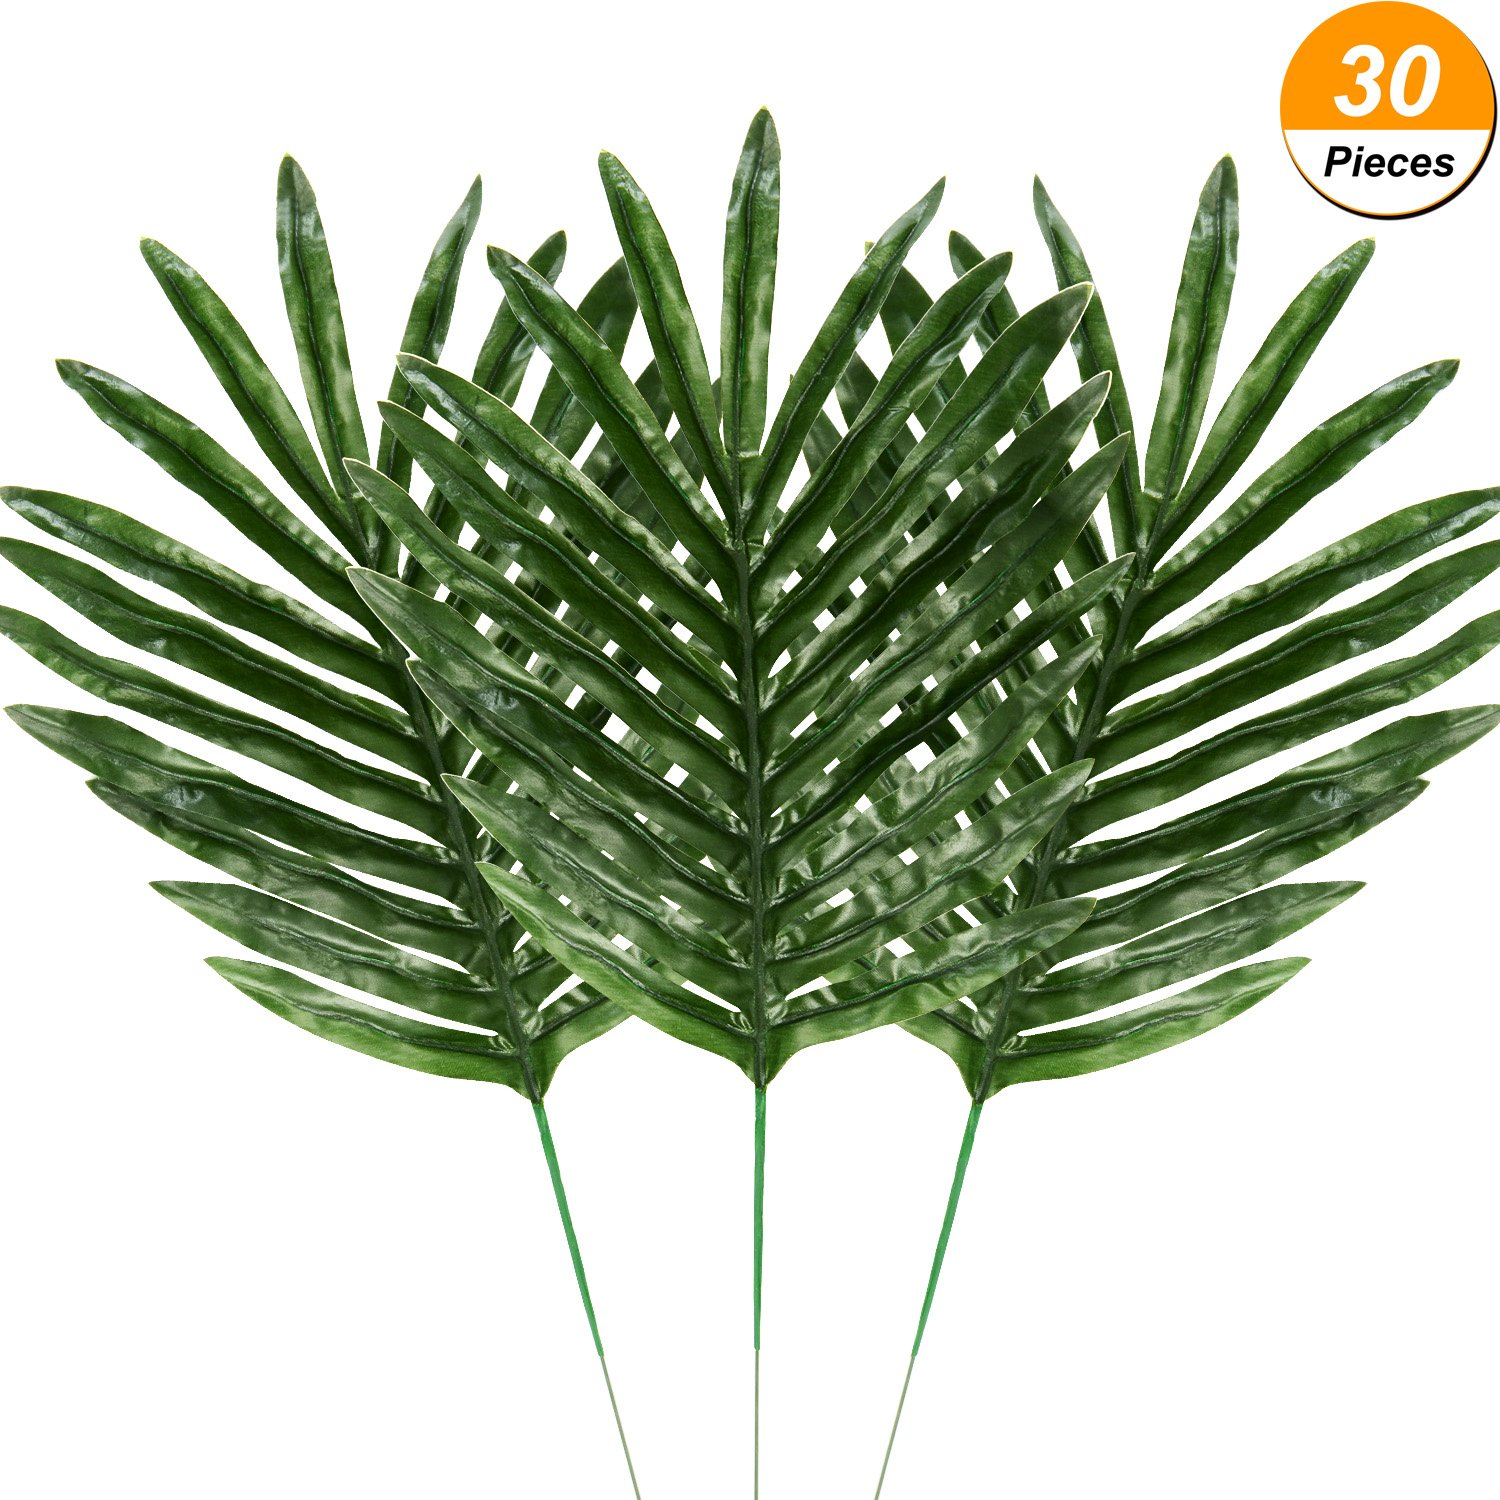 Hicarer 30 Pieces Palm Leaves Fake Tropical Leaf Artificial Leaves Decoration Fake Monstera Tropical Leaves